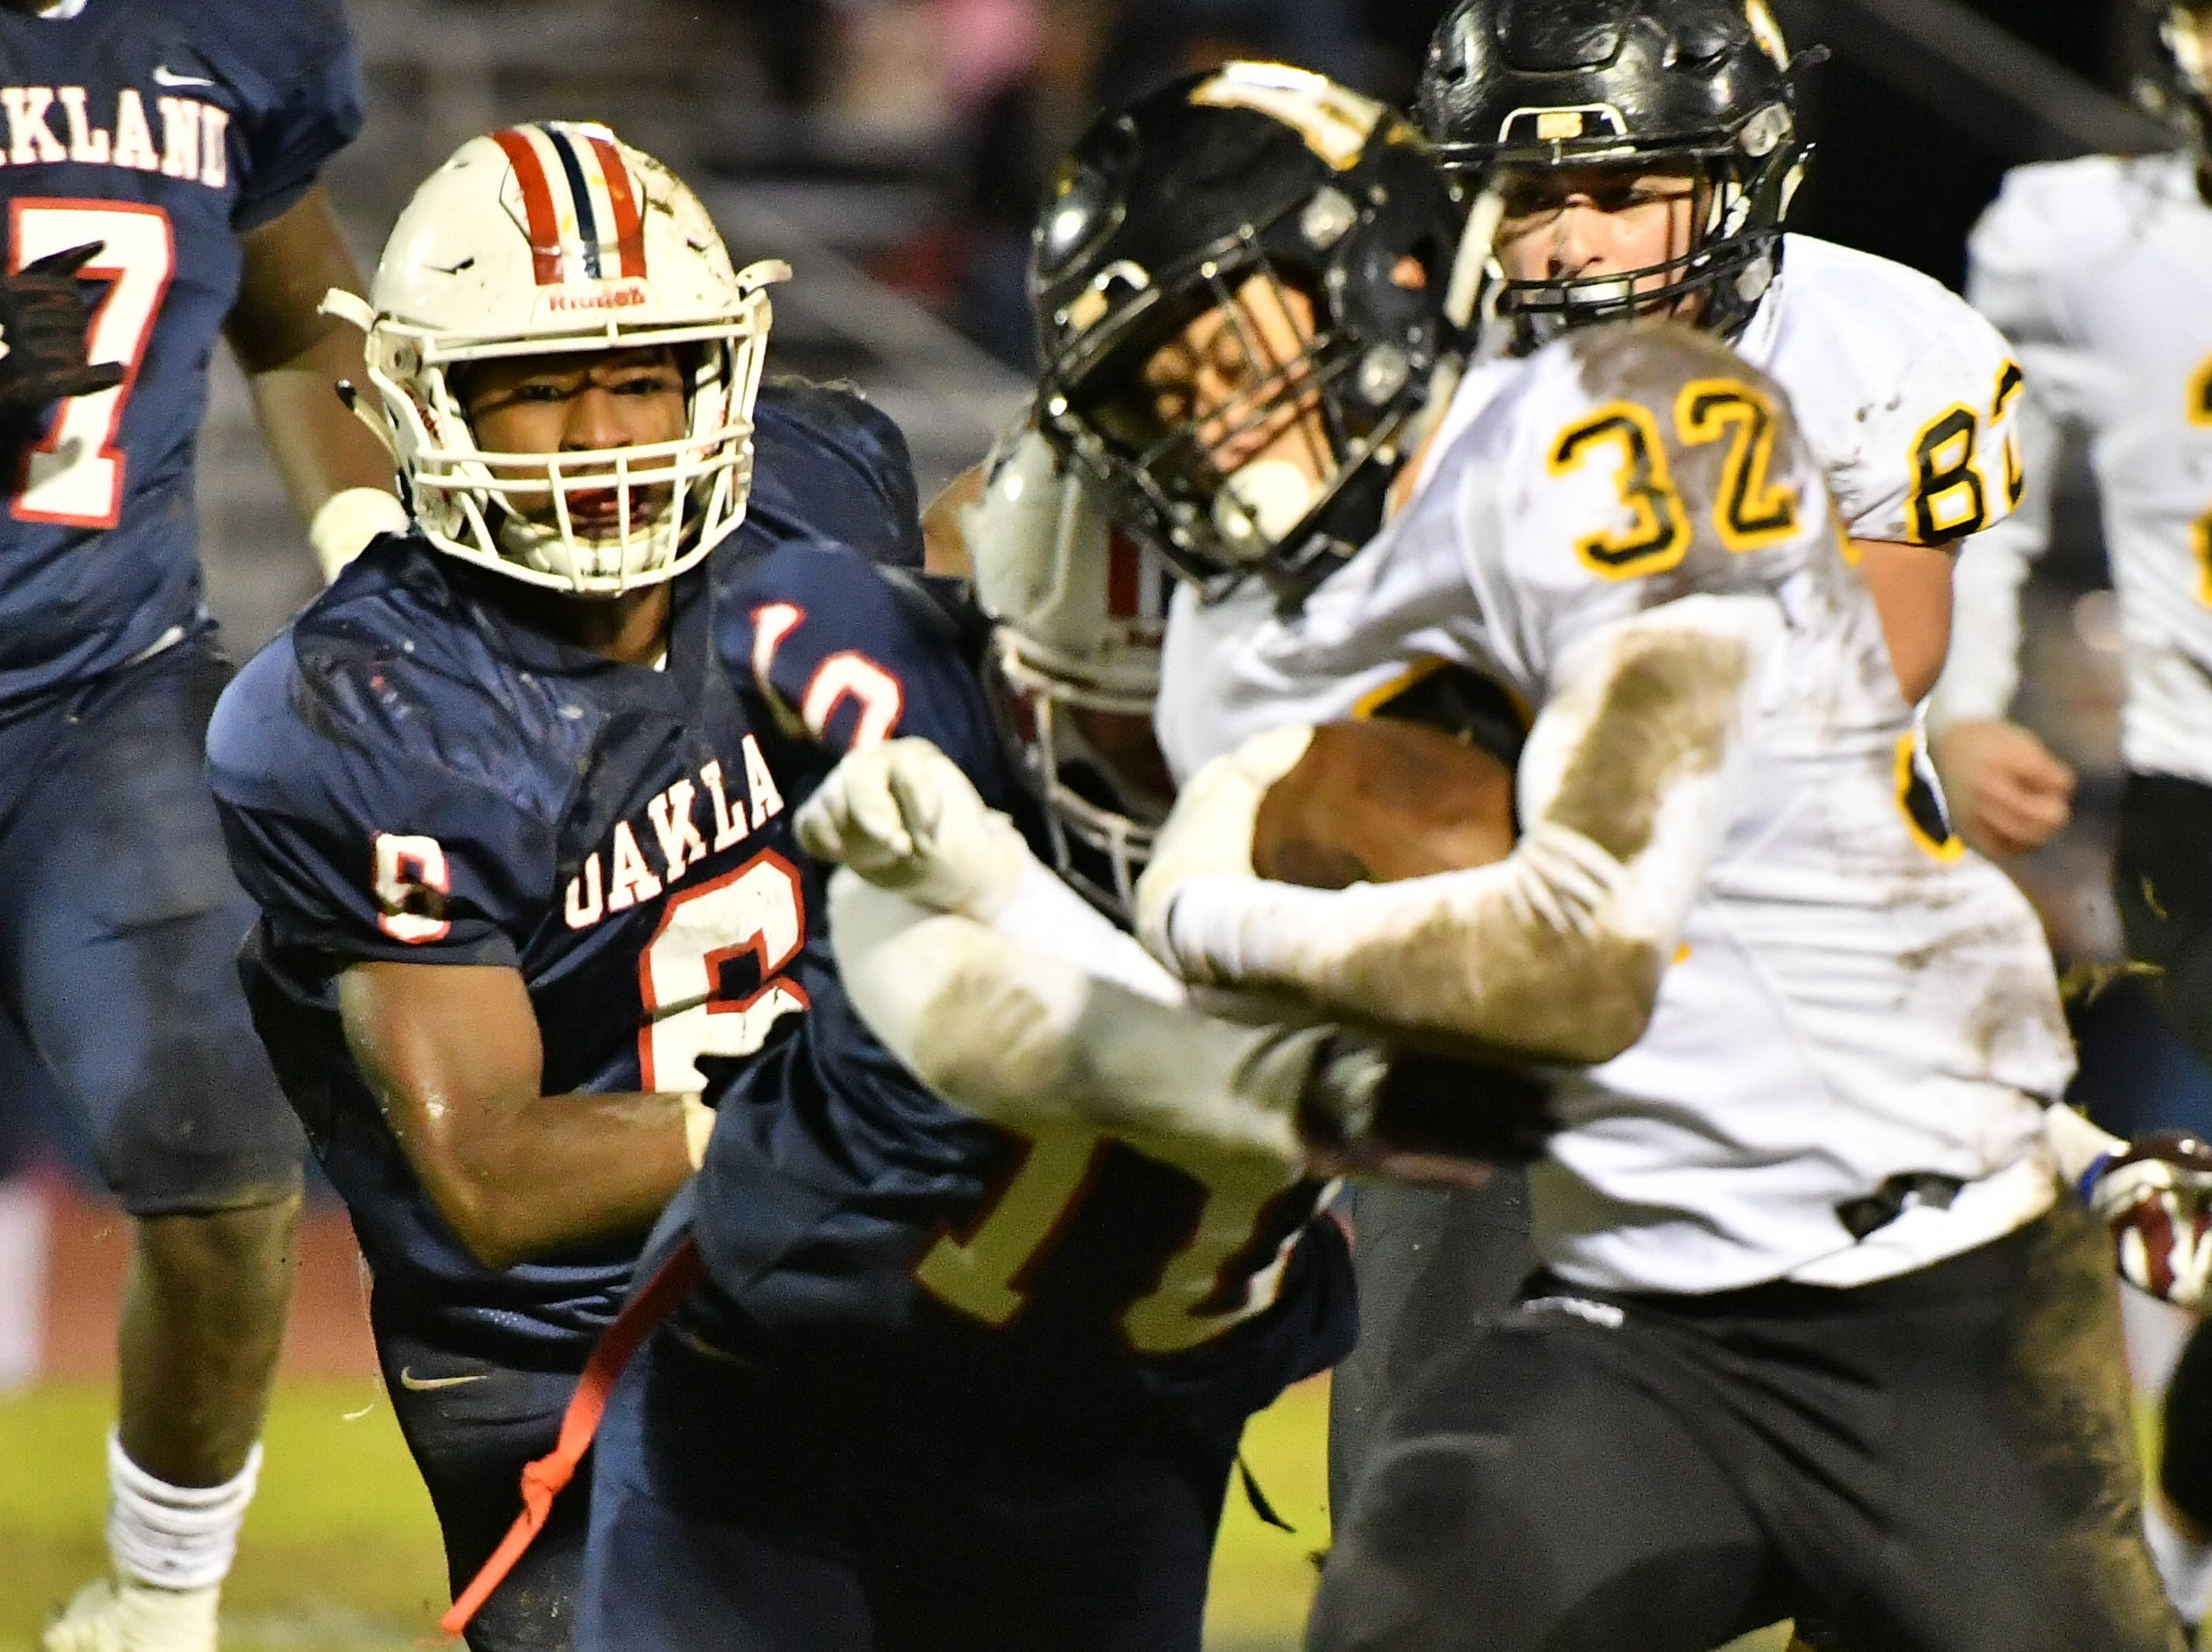 Hendersonville's Derek Kincaid gains yardage Friday night against Oakland.